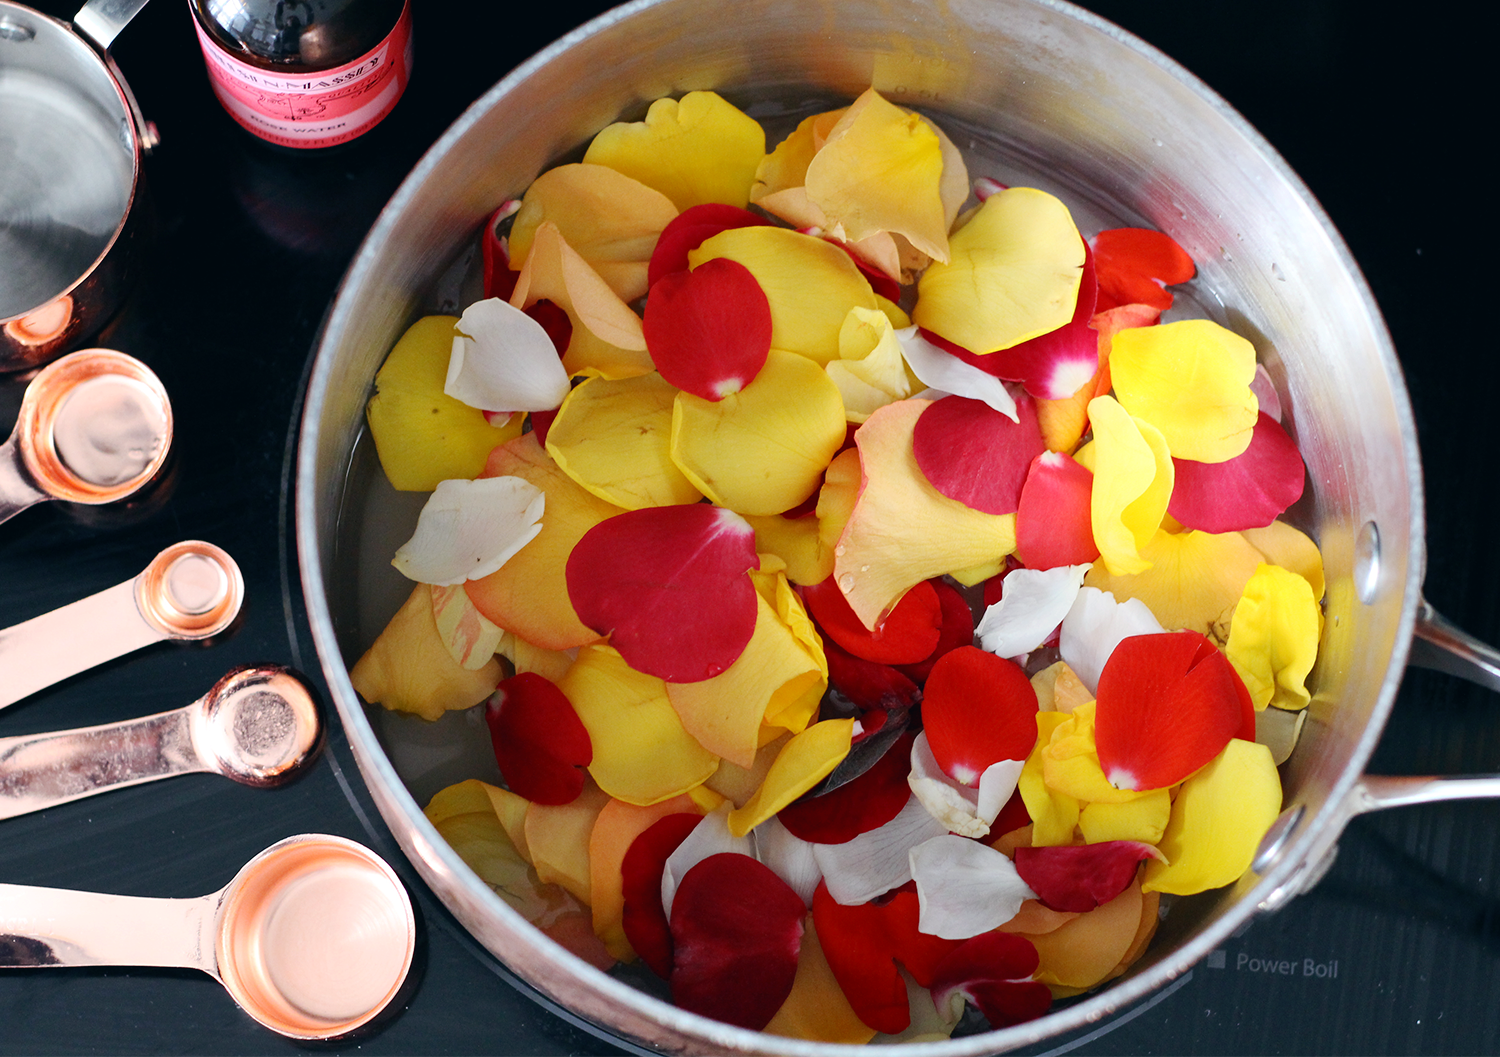 One way to use edible rose petals is by making a homemade rose simple syrup